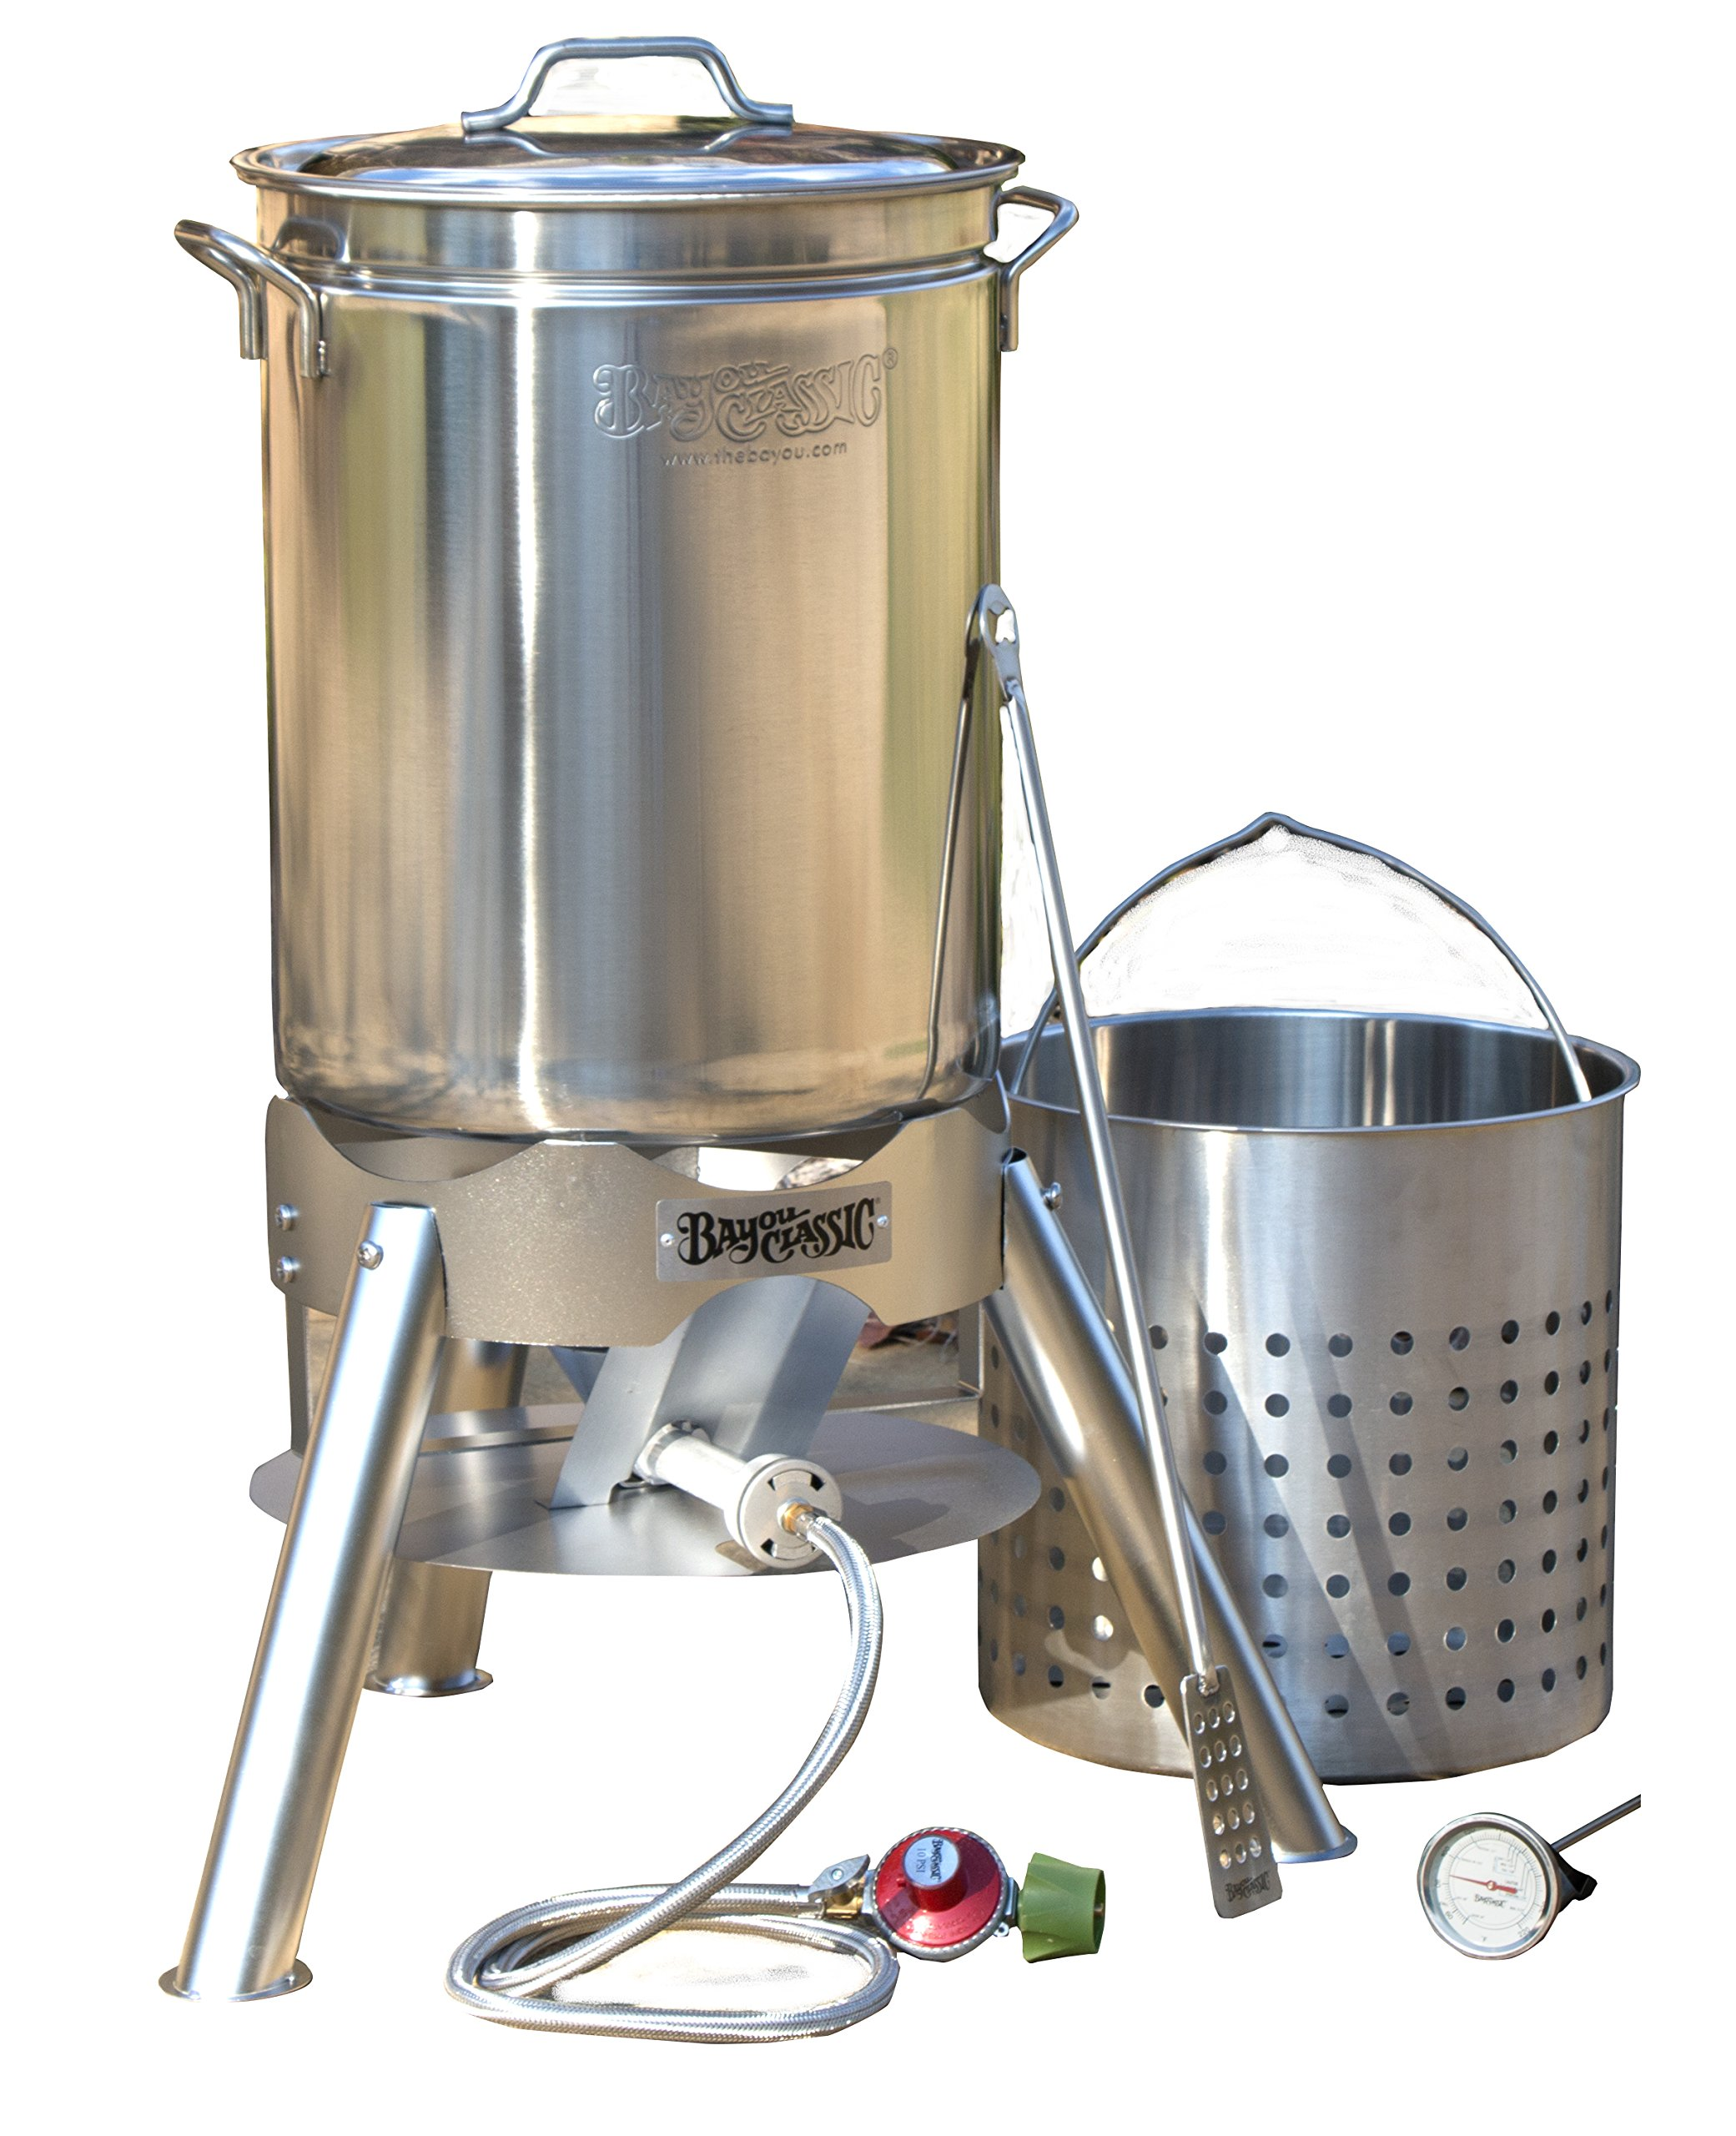 Bayou Classic 800-144 44 quart Boil and Brew Kit, Stainless by Bayou Classic